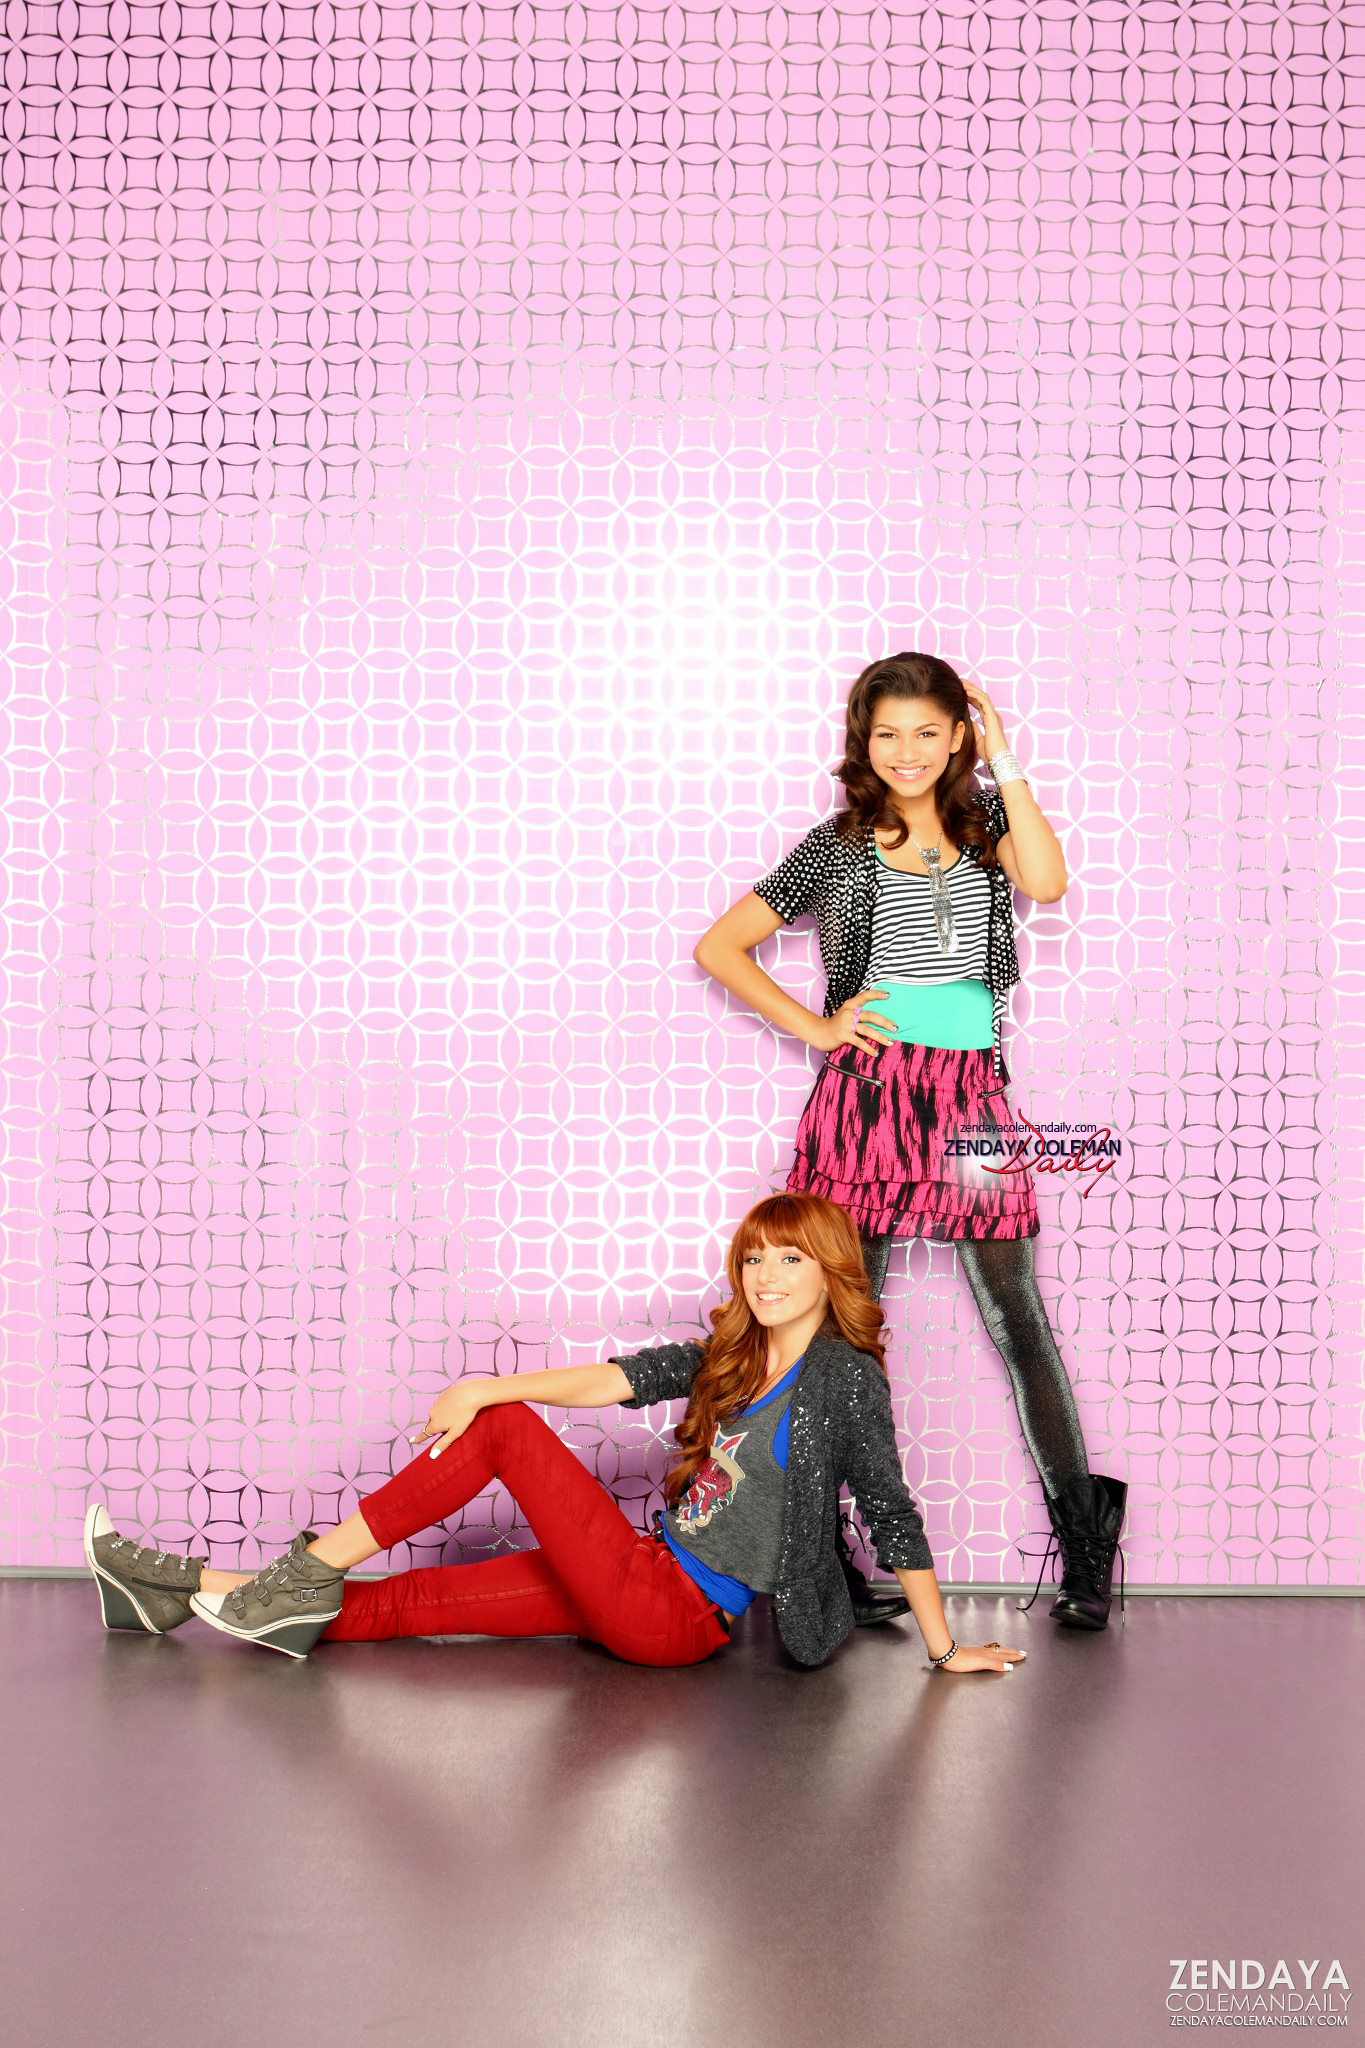 who is rocky from shake it up dating The hit disney show, shake it up has become a worldwide phenomenon being watched by millions of people all over the world the show stars two teenage girls, cece jones and rocky blue, played by bella thorne and zendaya respectively.